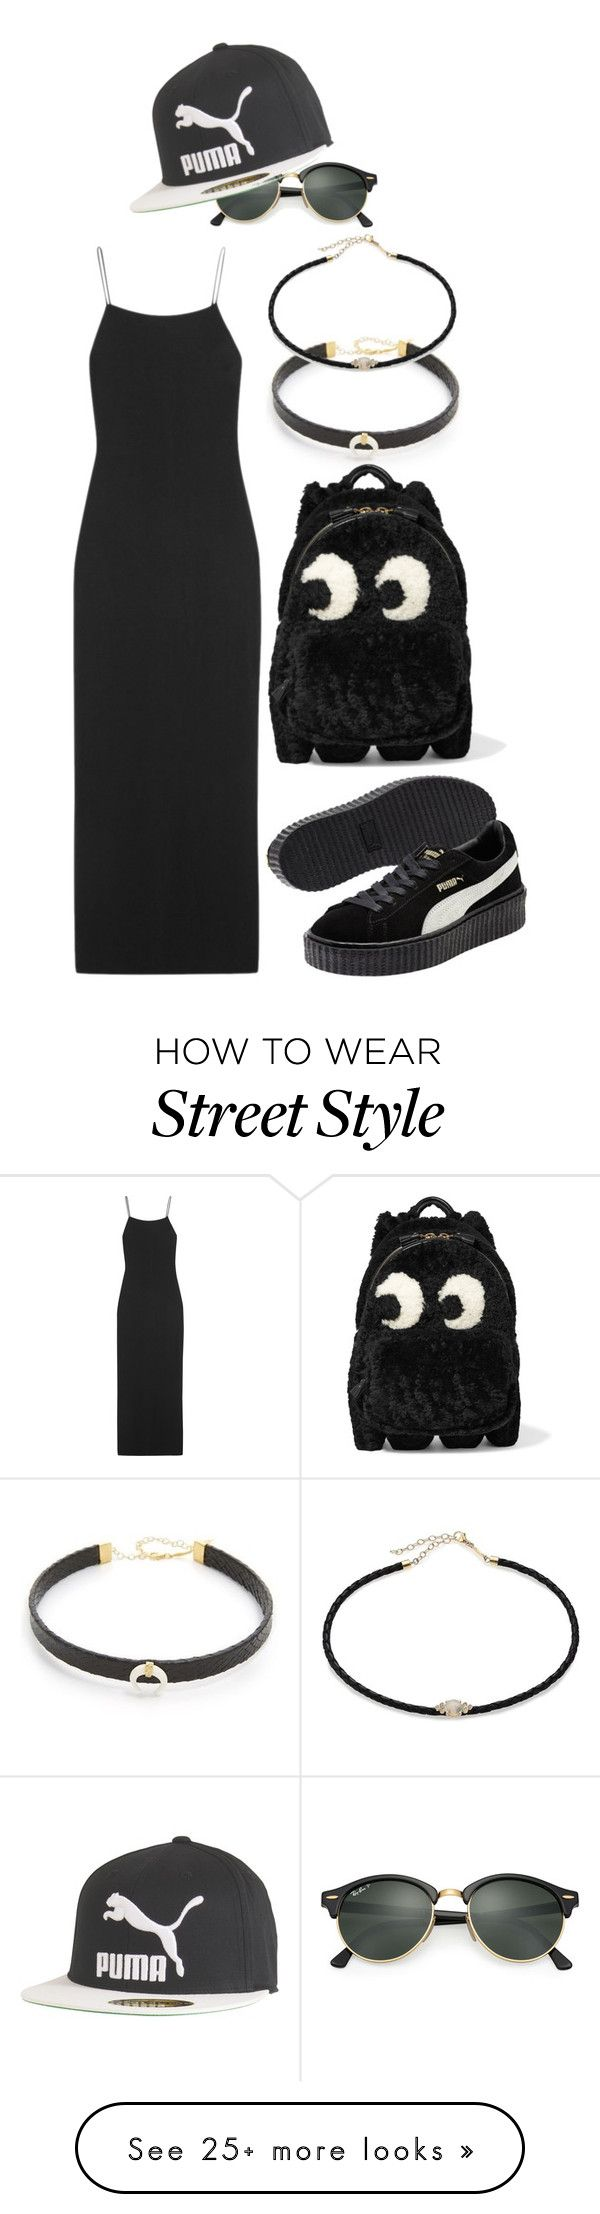 """Street Style"" by ashantiannasmith on Polyvore featuring Jacquie Aiche, The Row, Anya Hindmarch, Ray-Ban and Puma"